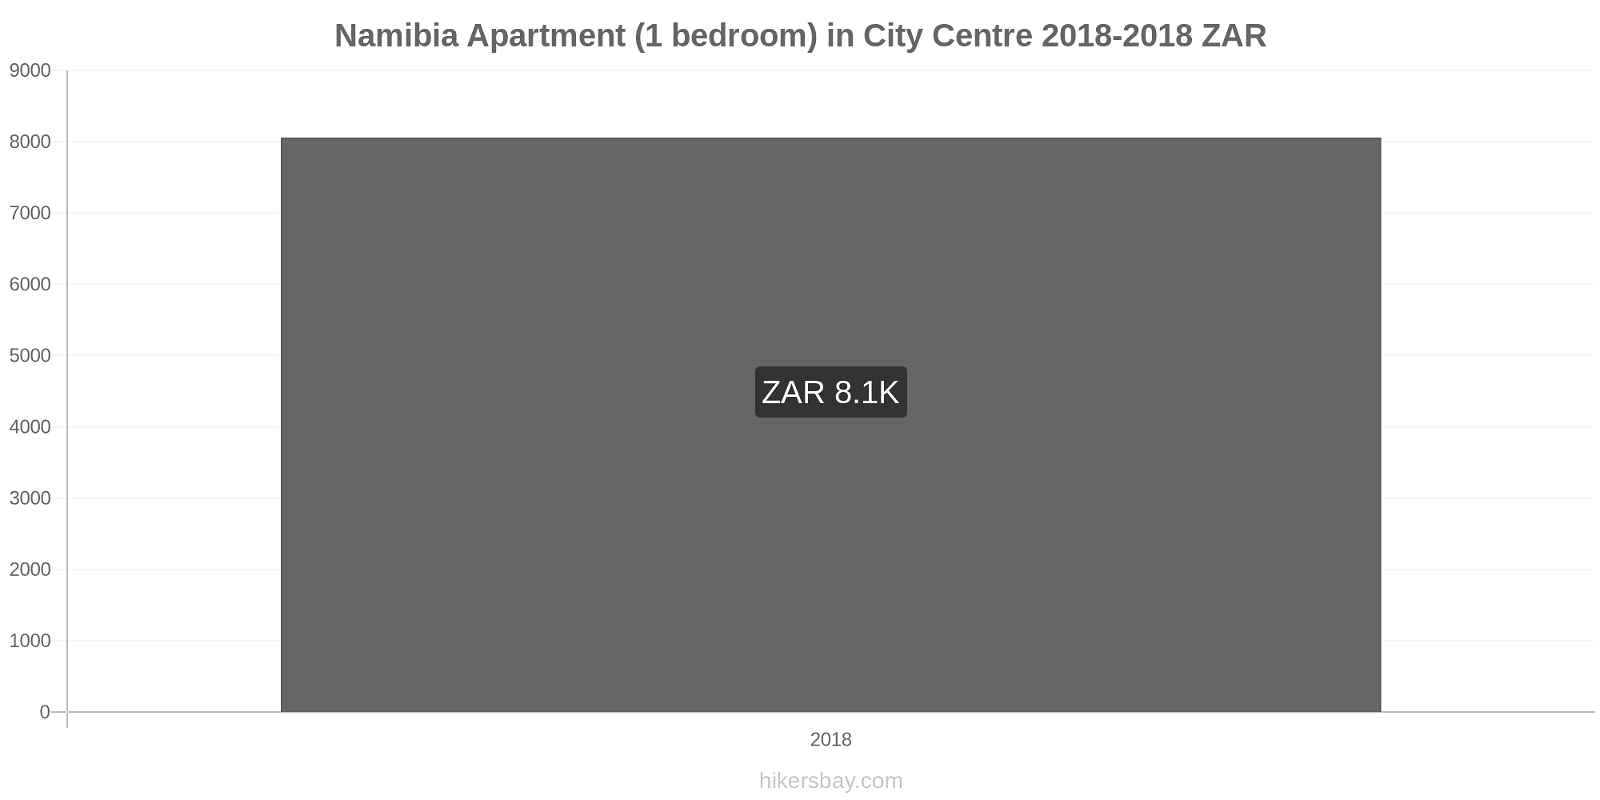 Namibia price changes Apartment (1 bedroom) in City Centre hikersbay.com